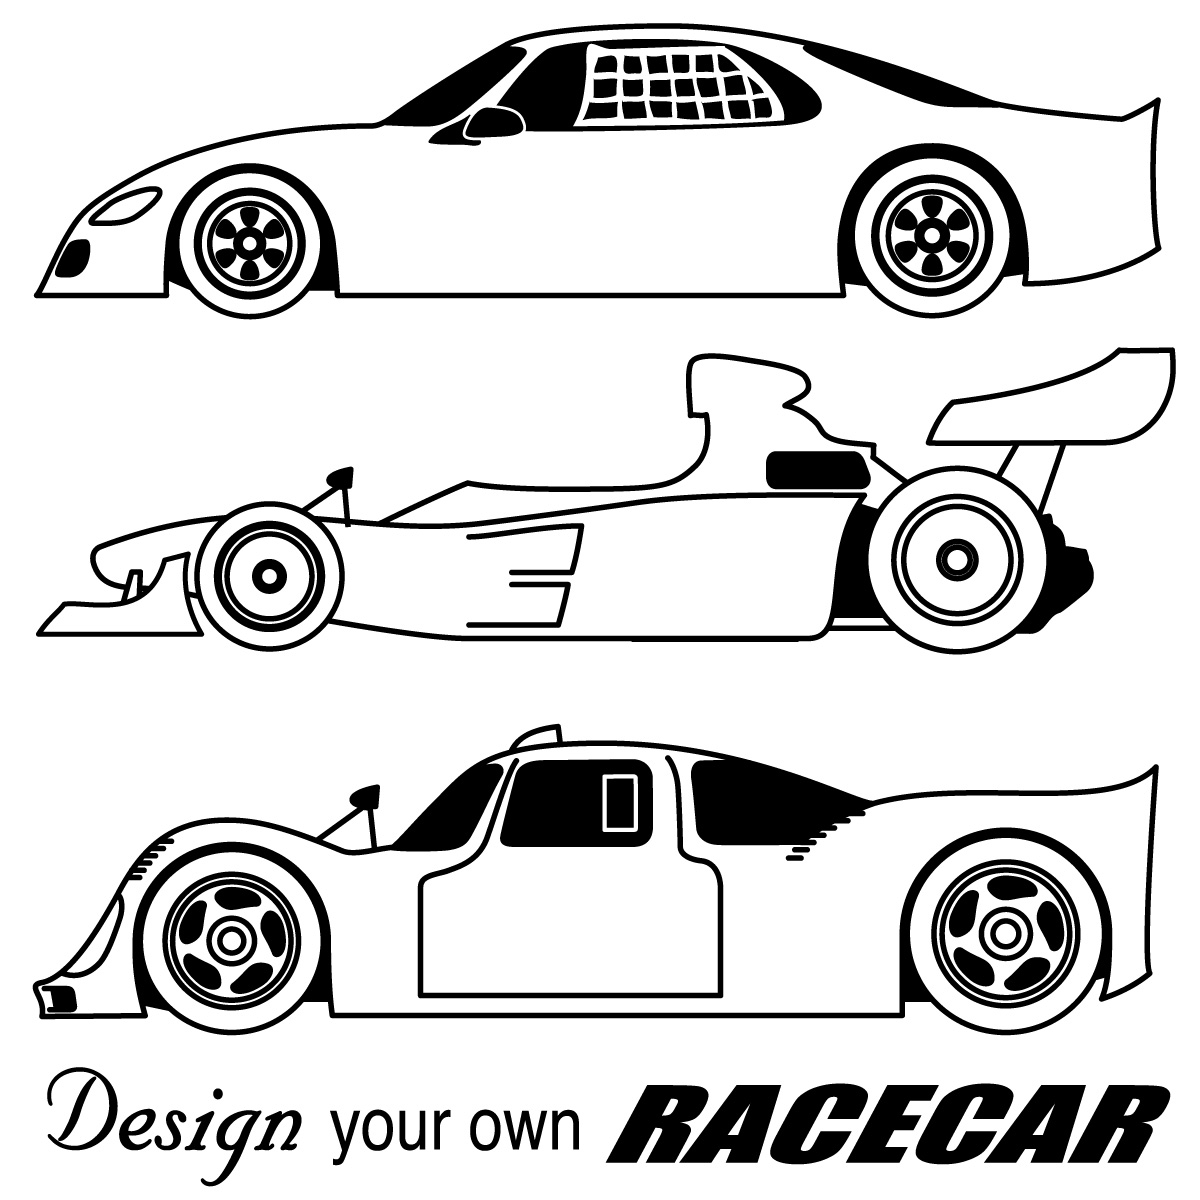 race car clipart clipart panda free clipart images. Black Bedroom Furniture Sets. Home Design Ideas